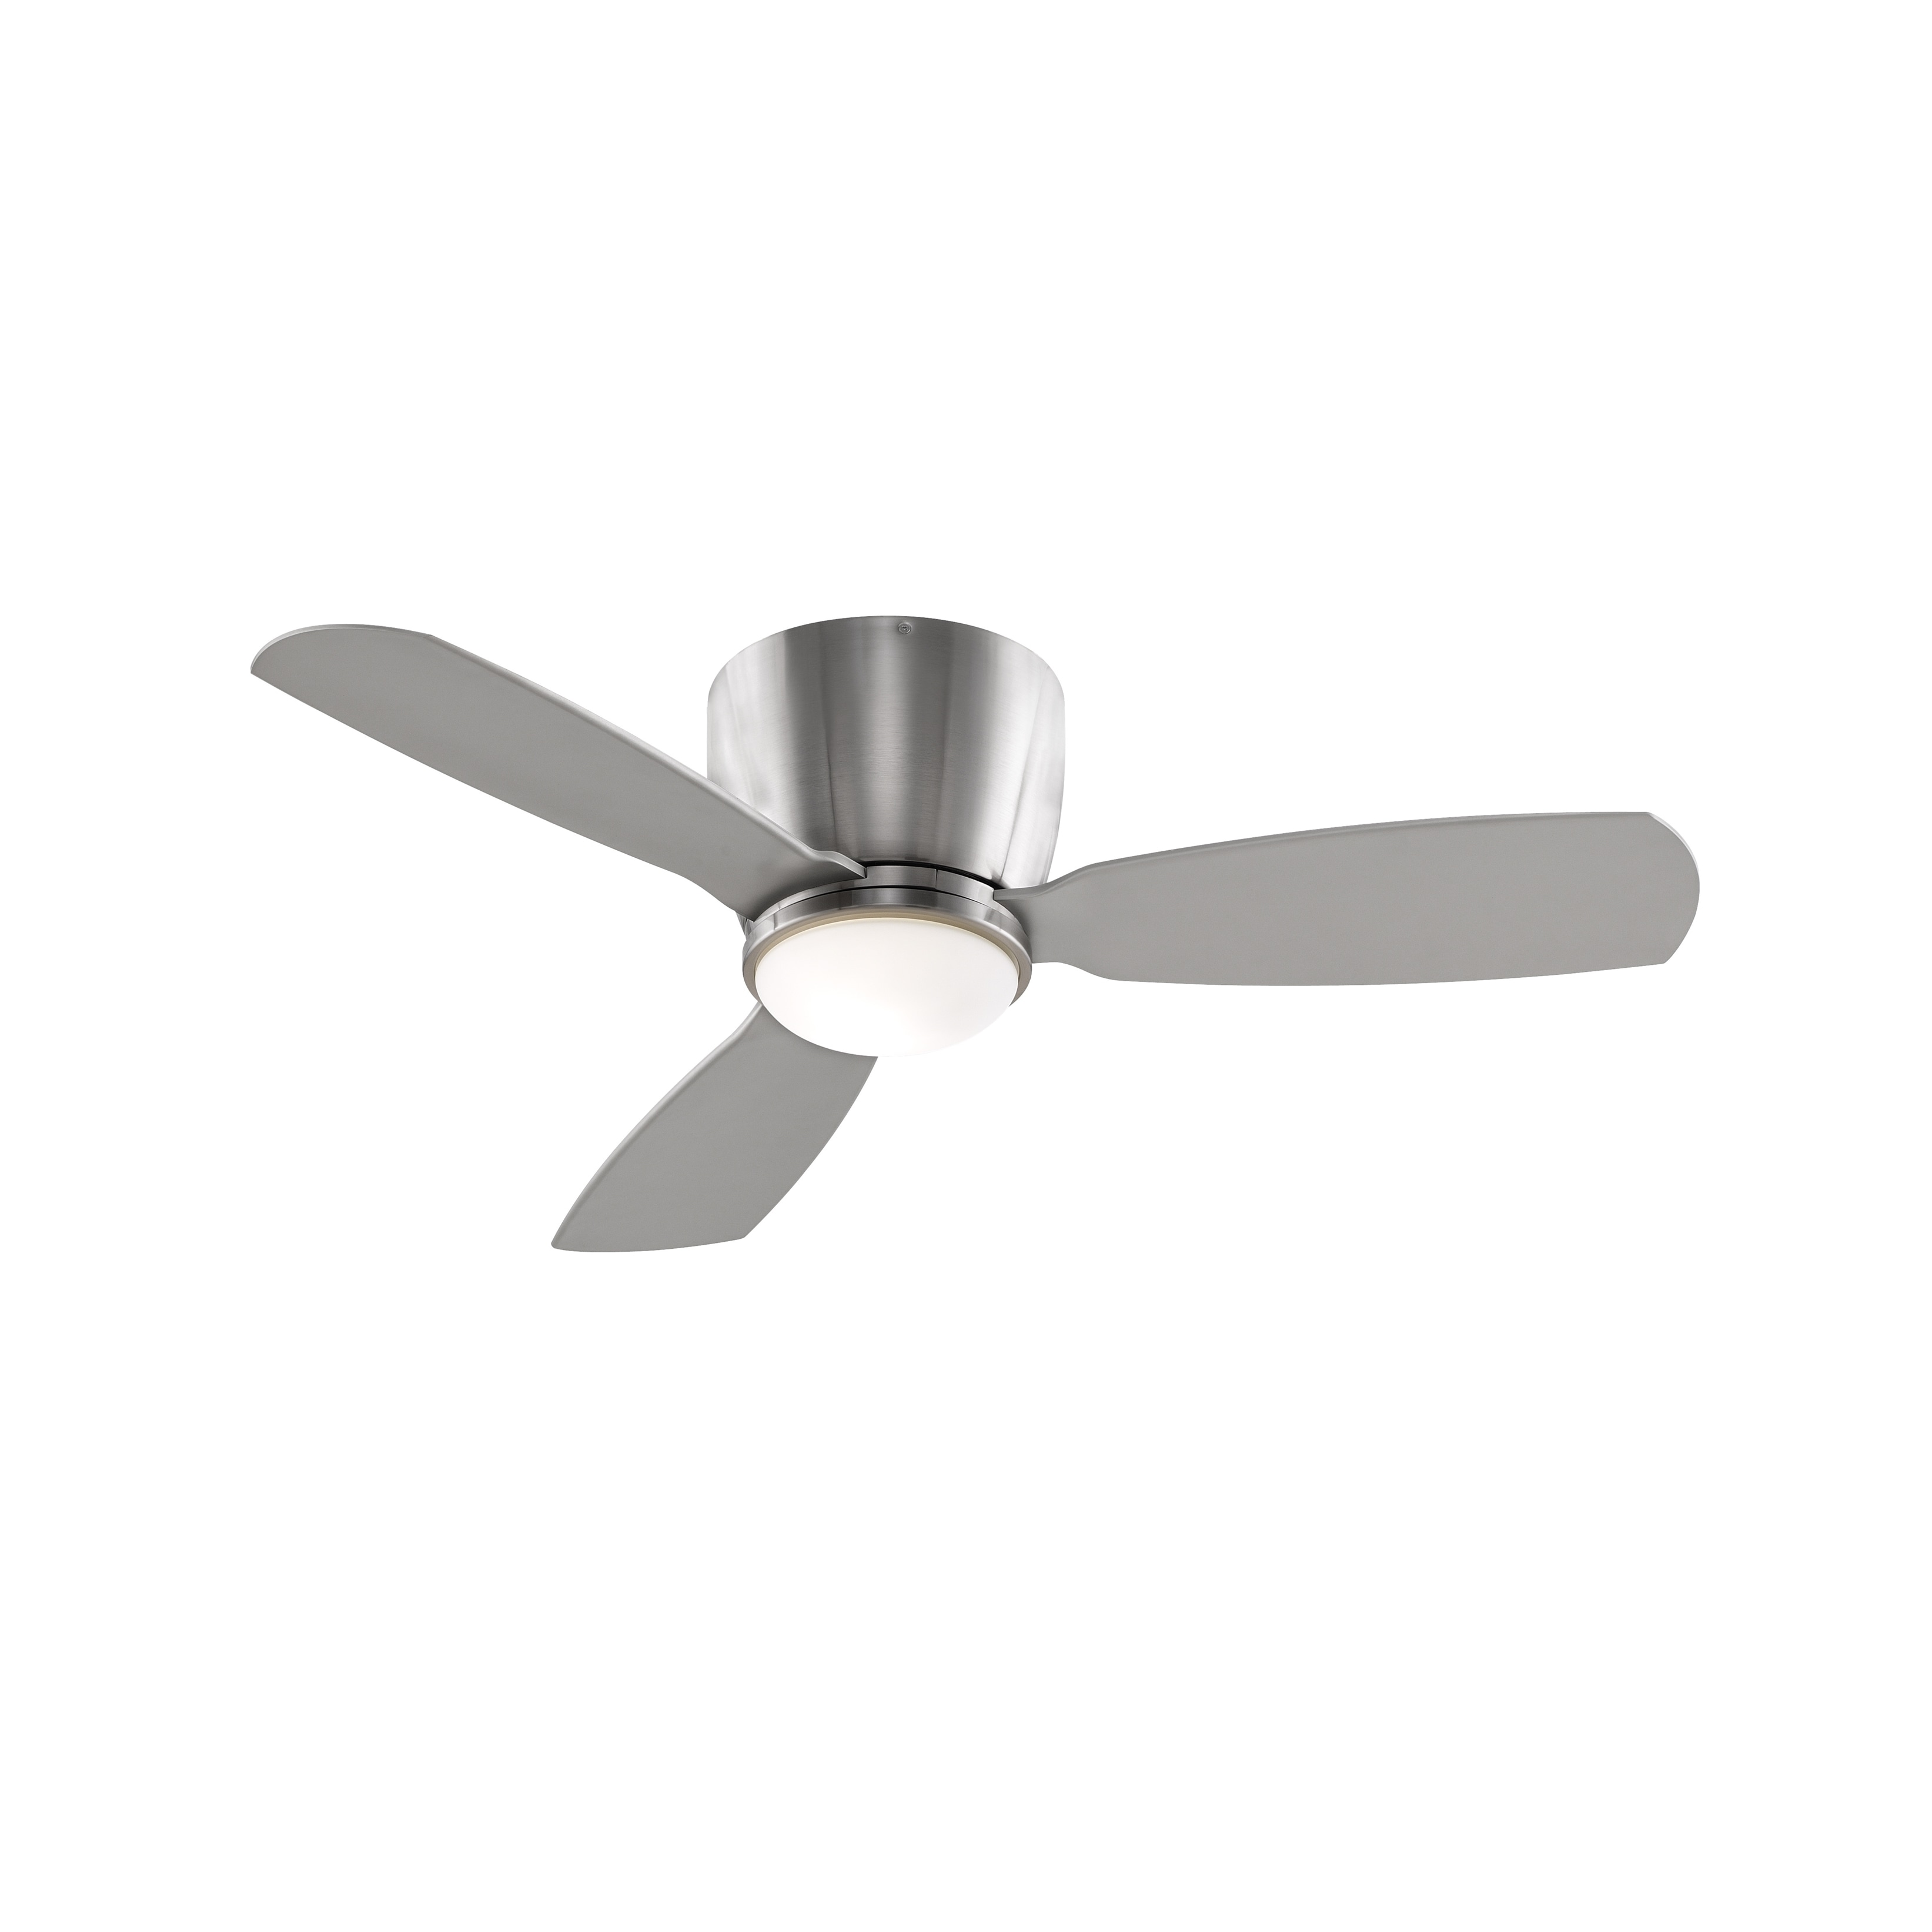 100 W Ceiling Fans For Less